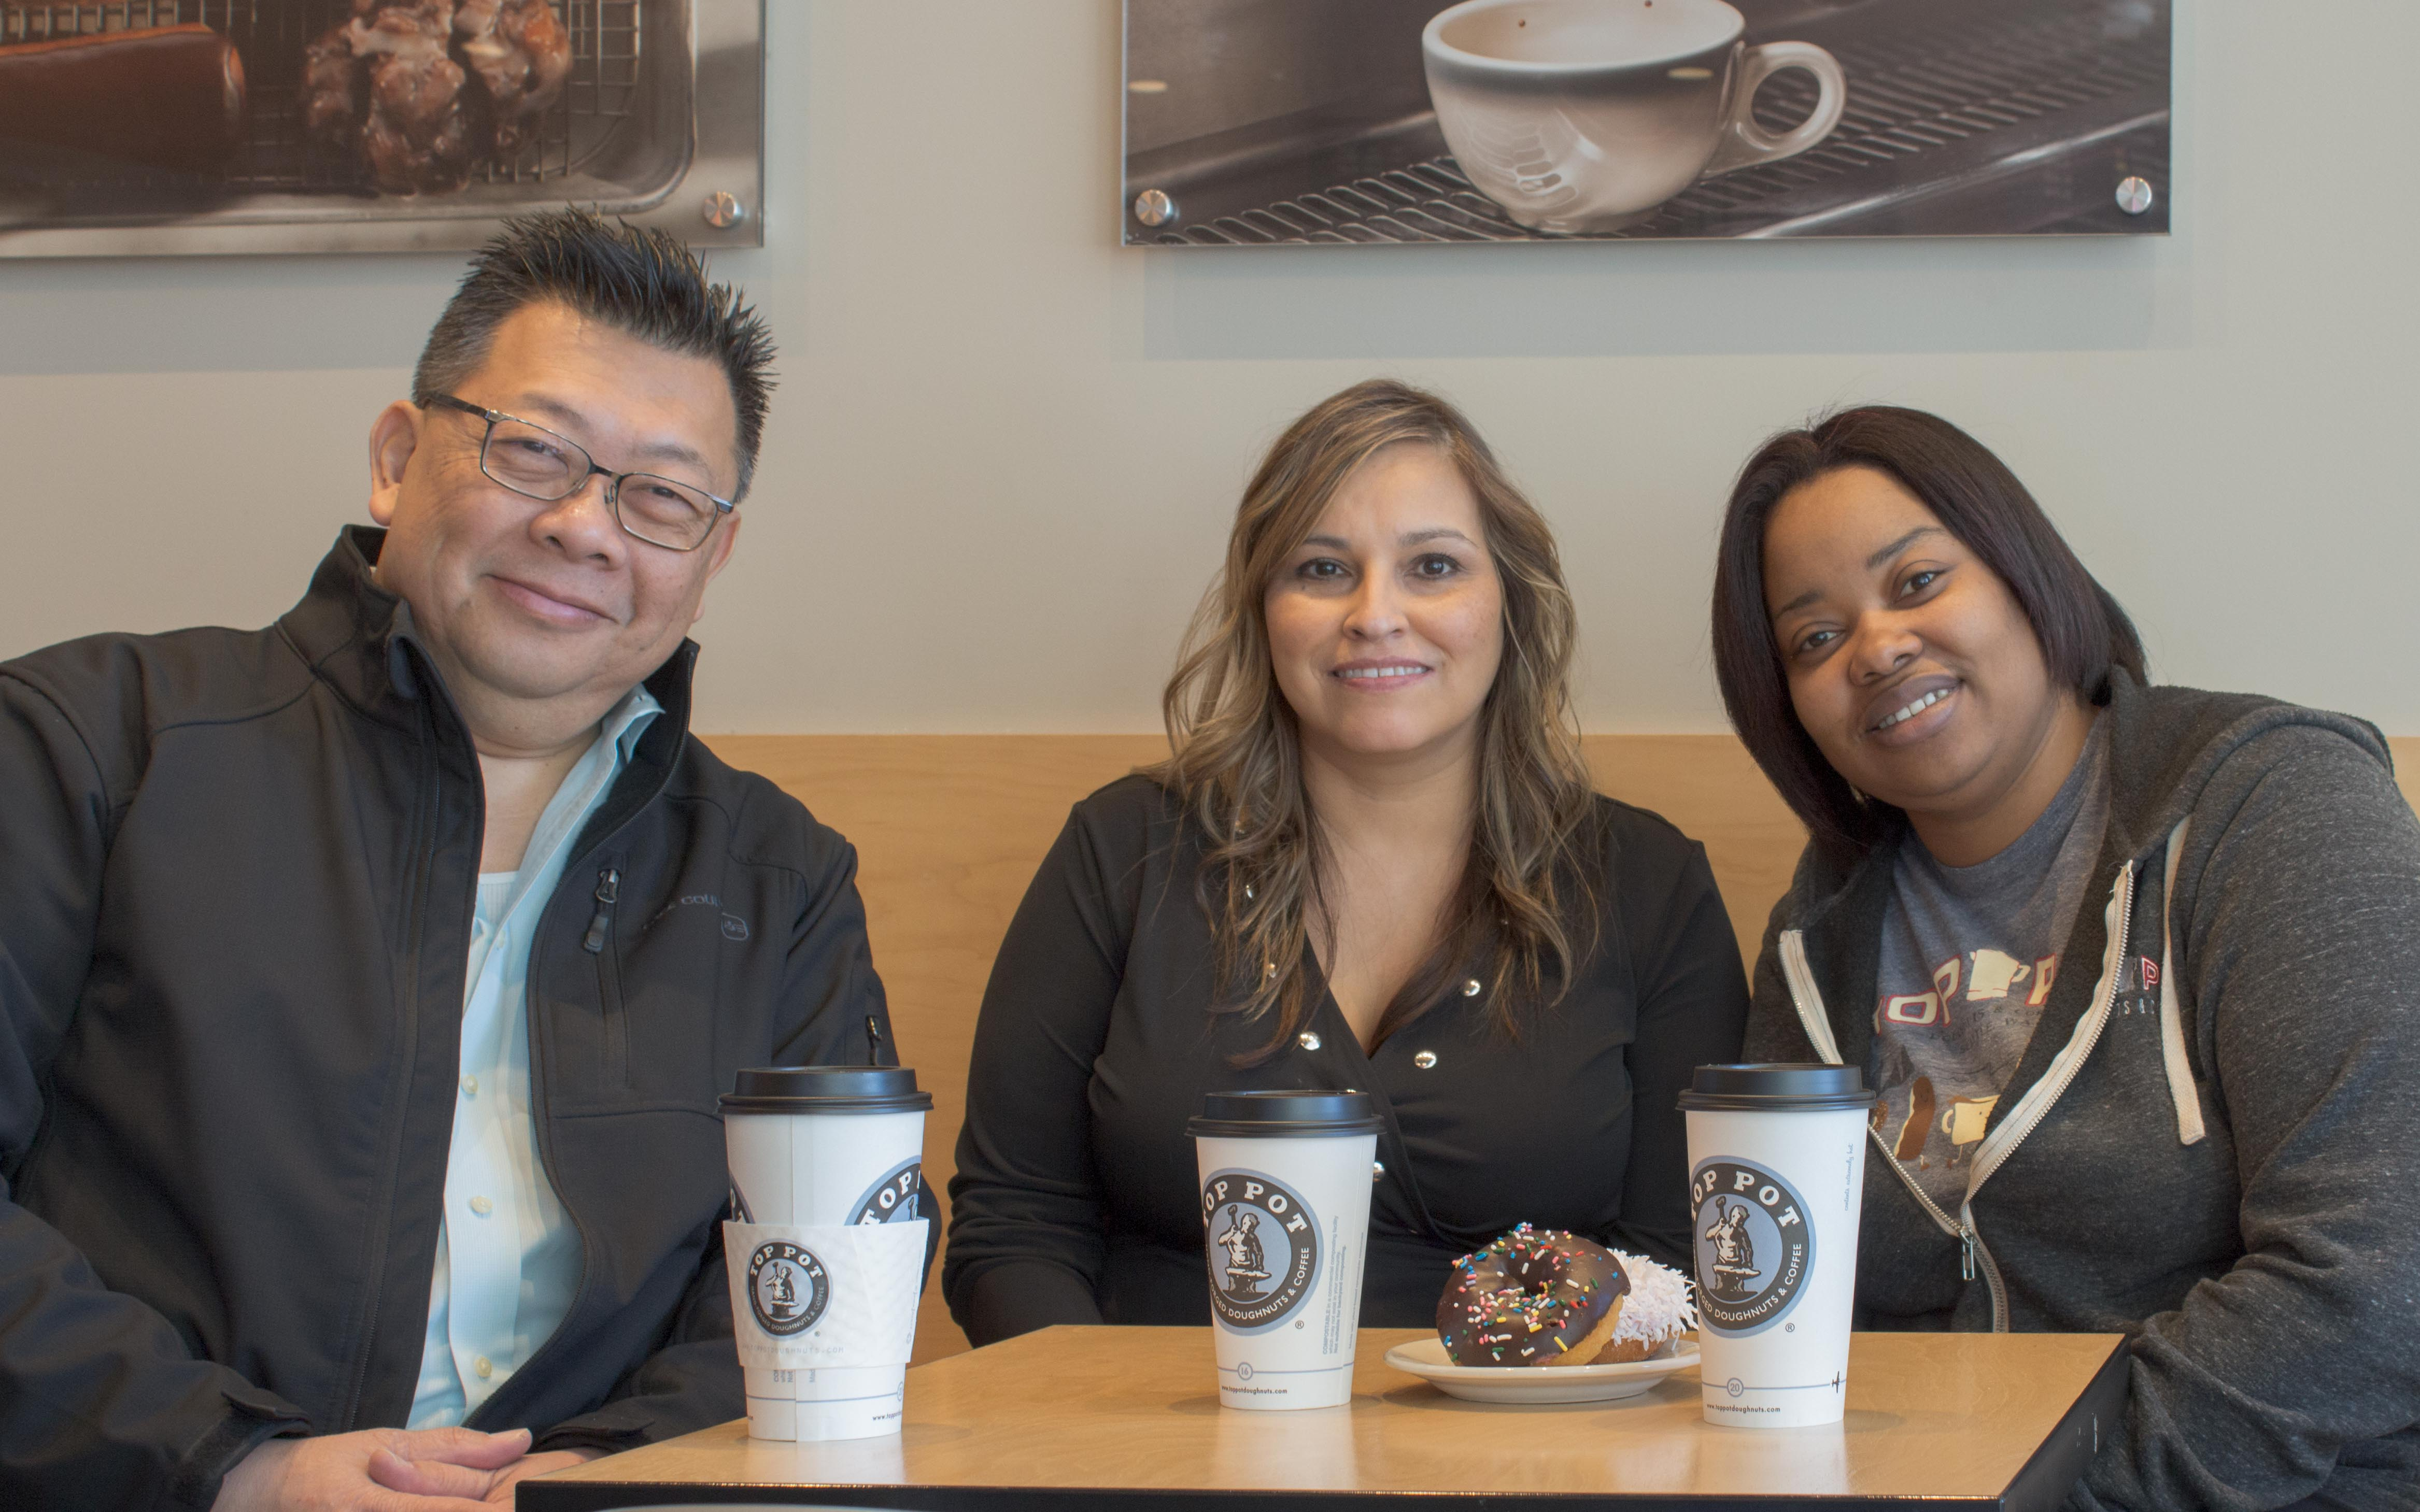 Top Pot Hand-Forged Doughnuts & Coffee- Richardson Cityline in Murphy and North Richardson, meet the Manager Amber Longmire